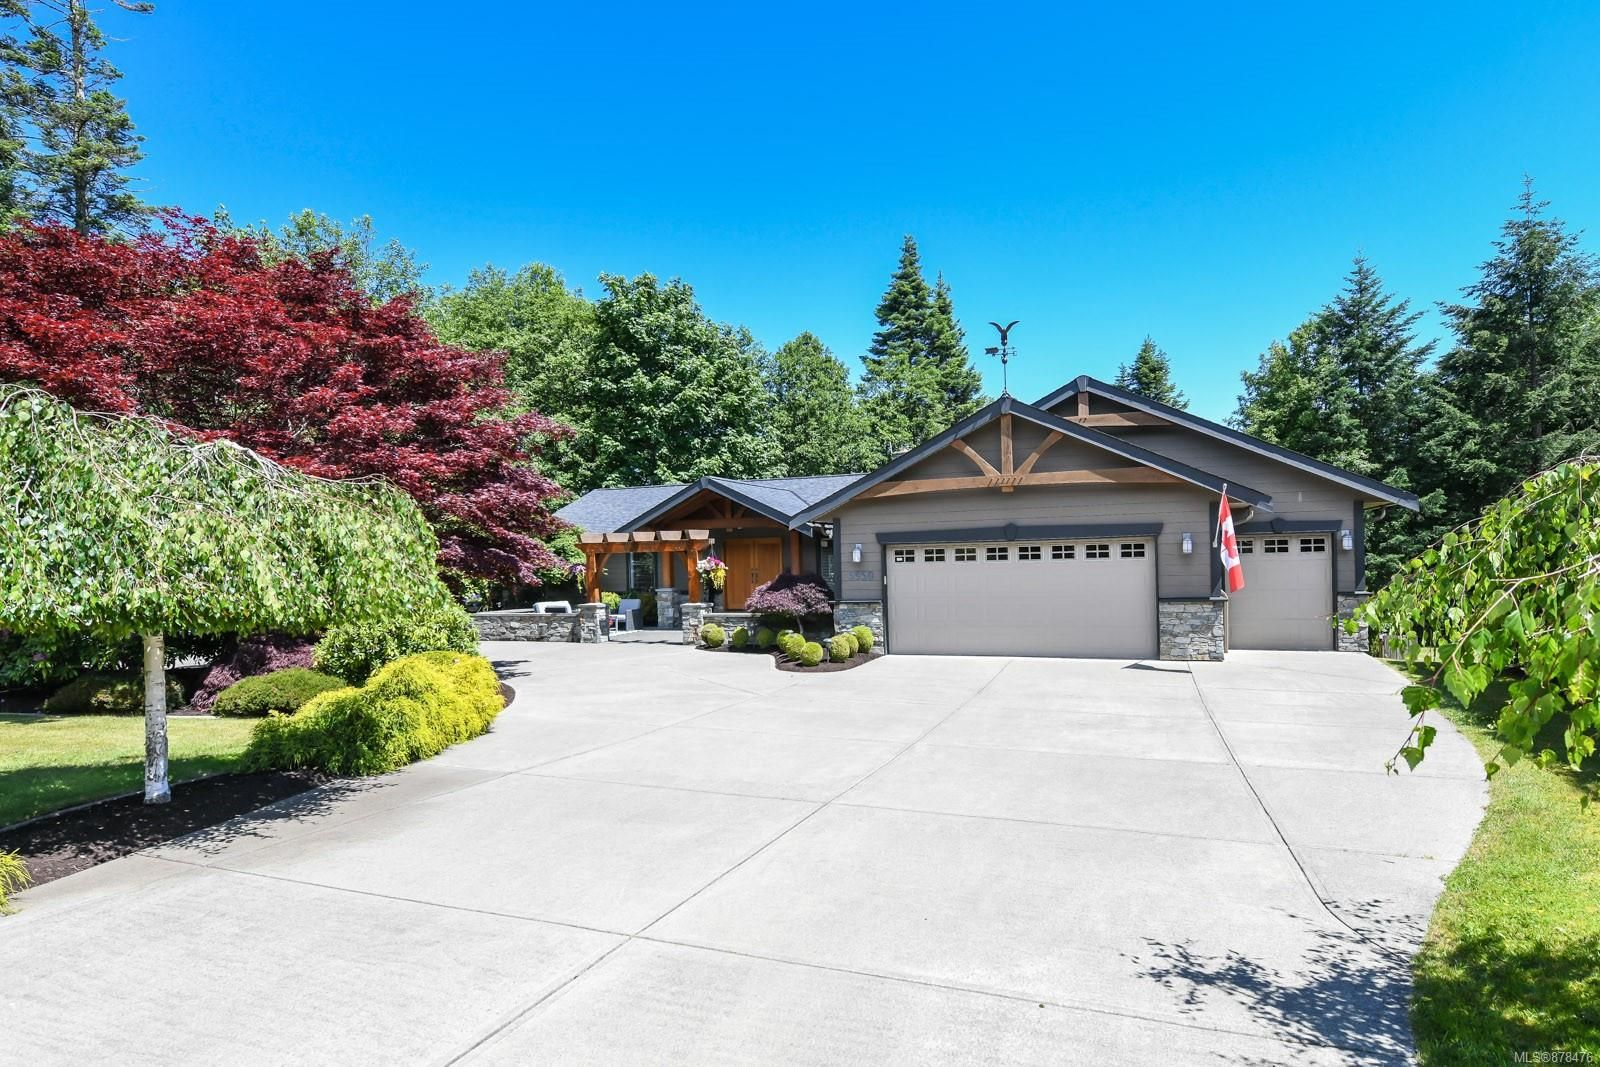 Main Photo: 5950 Mosley Rd in : CV Courtenay North House for sale (Comox Valley)  : MLS®# 878476